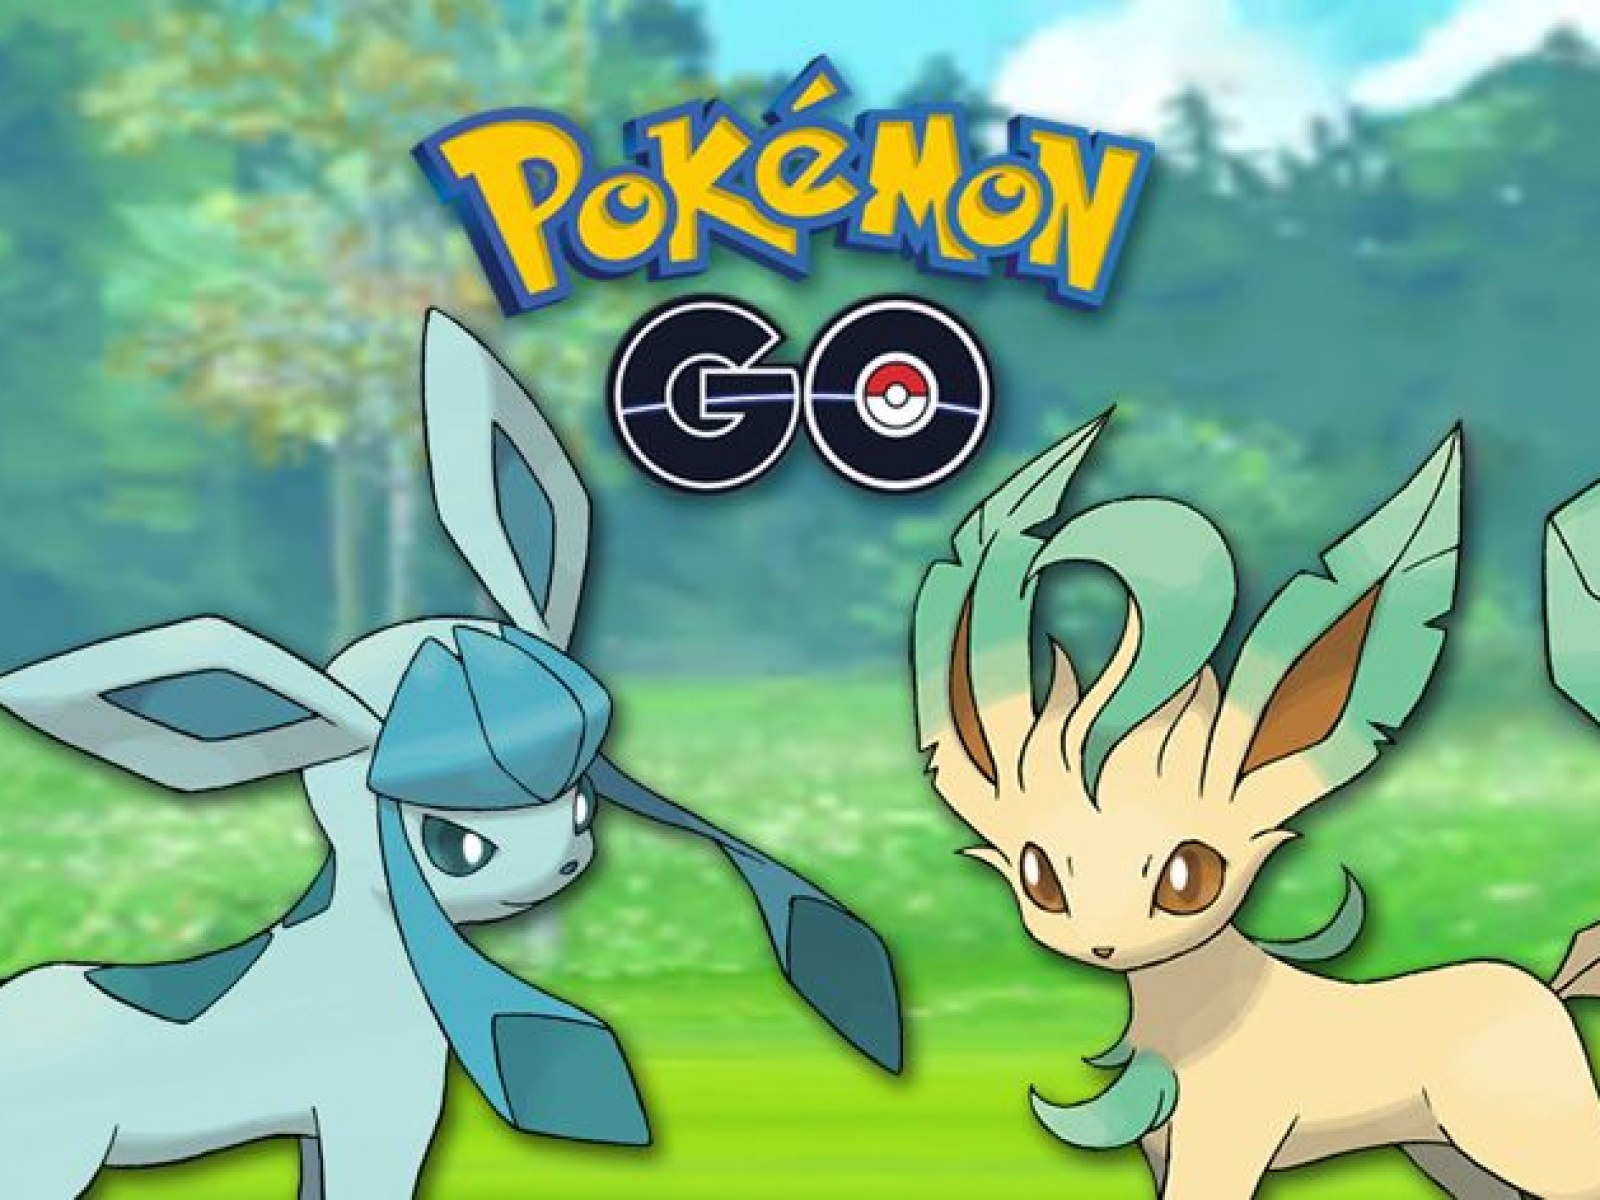 Pokémon Go' Leafeon and Glaceon Name Trick: How to Guarantee Each